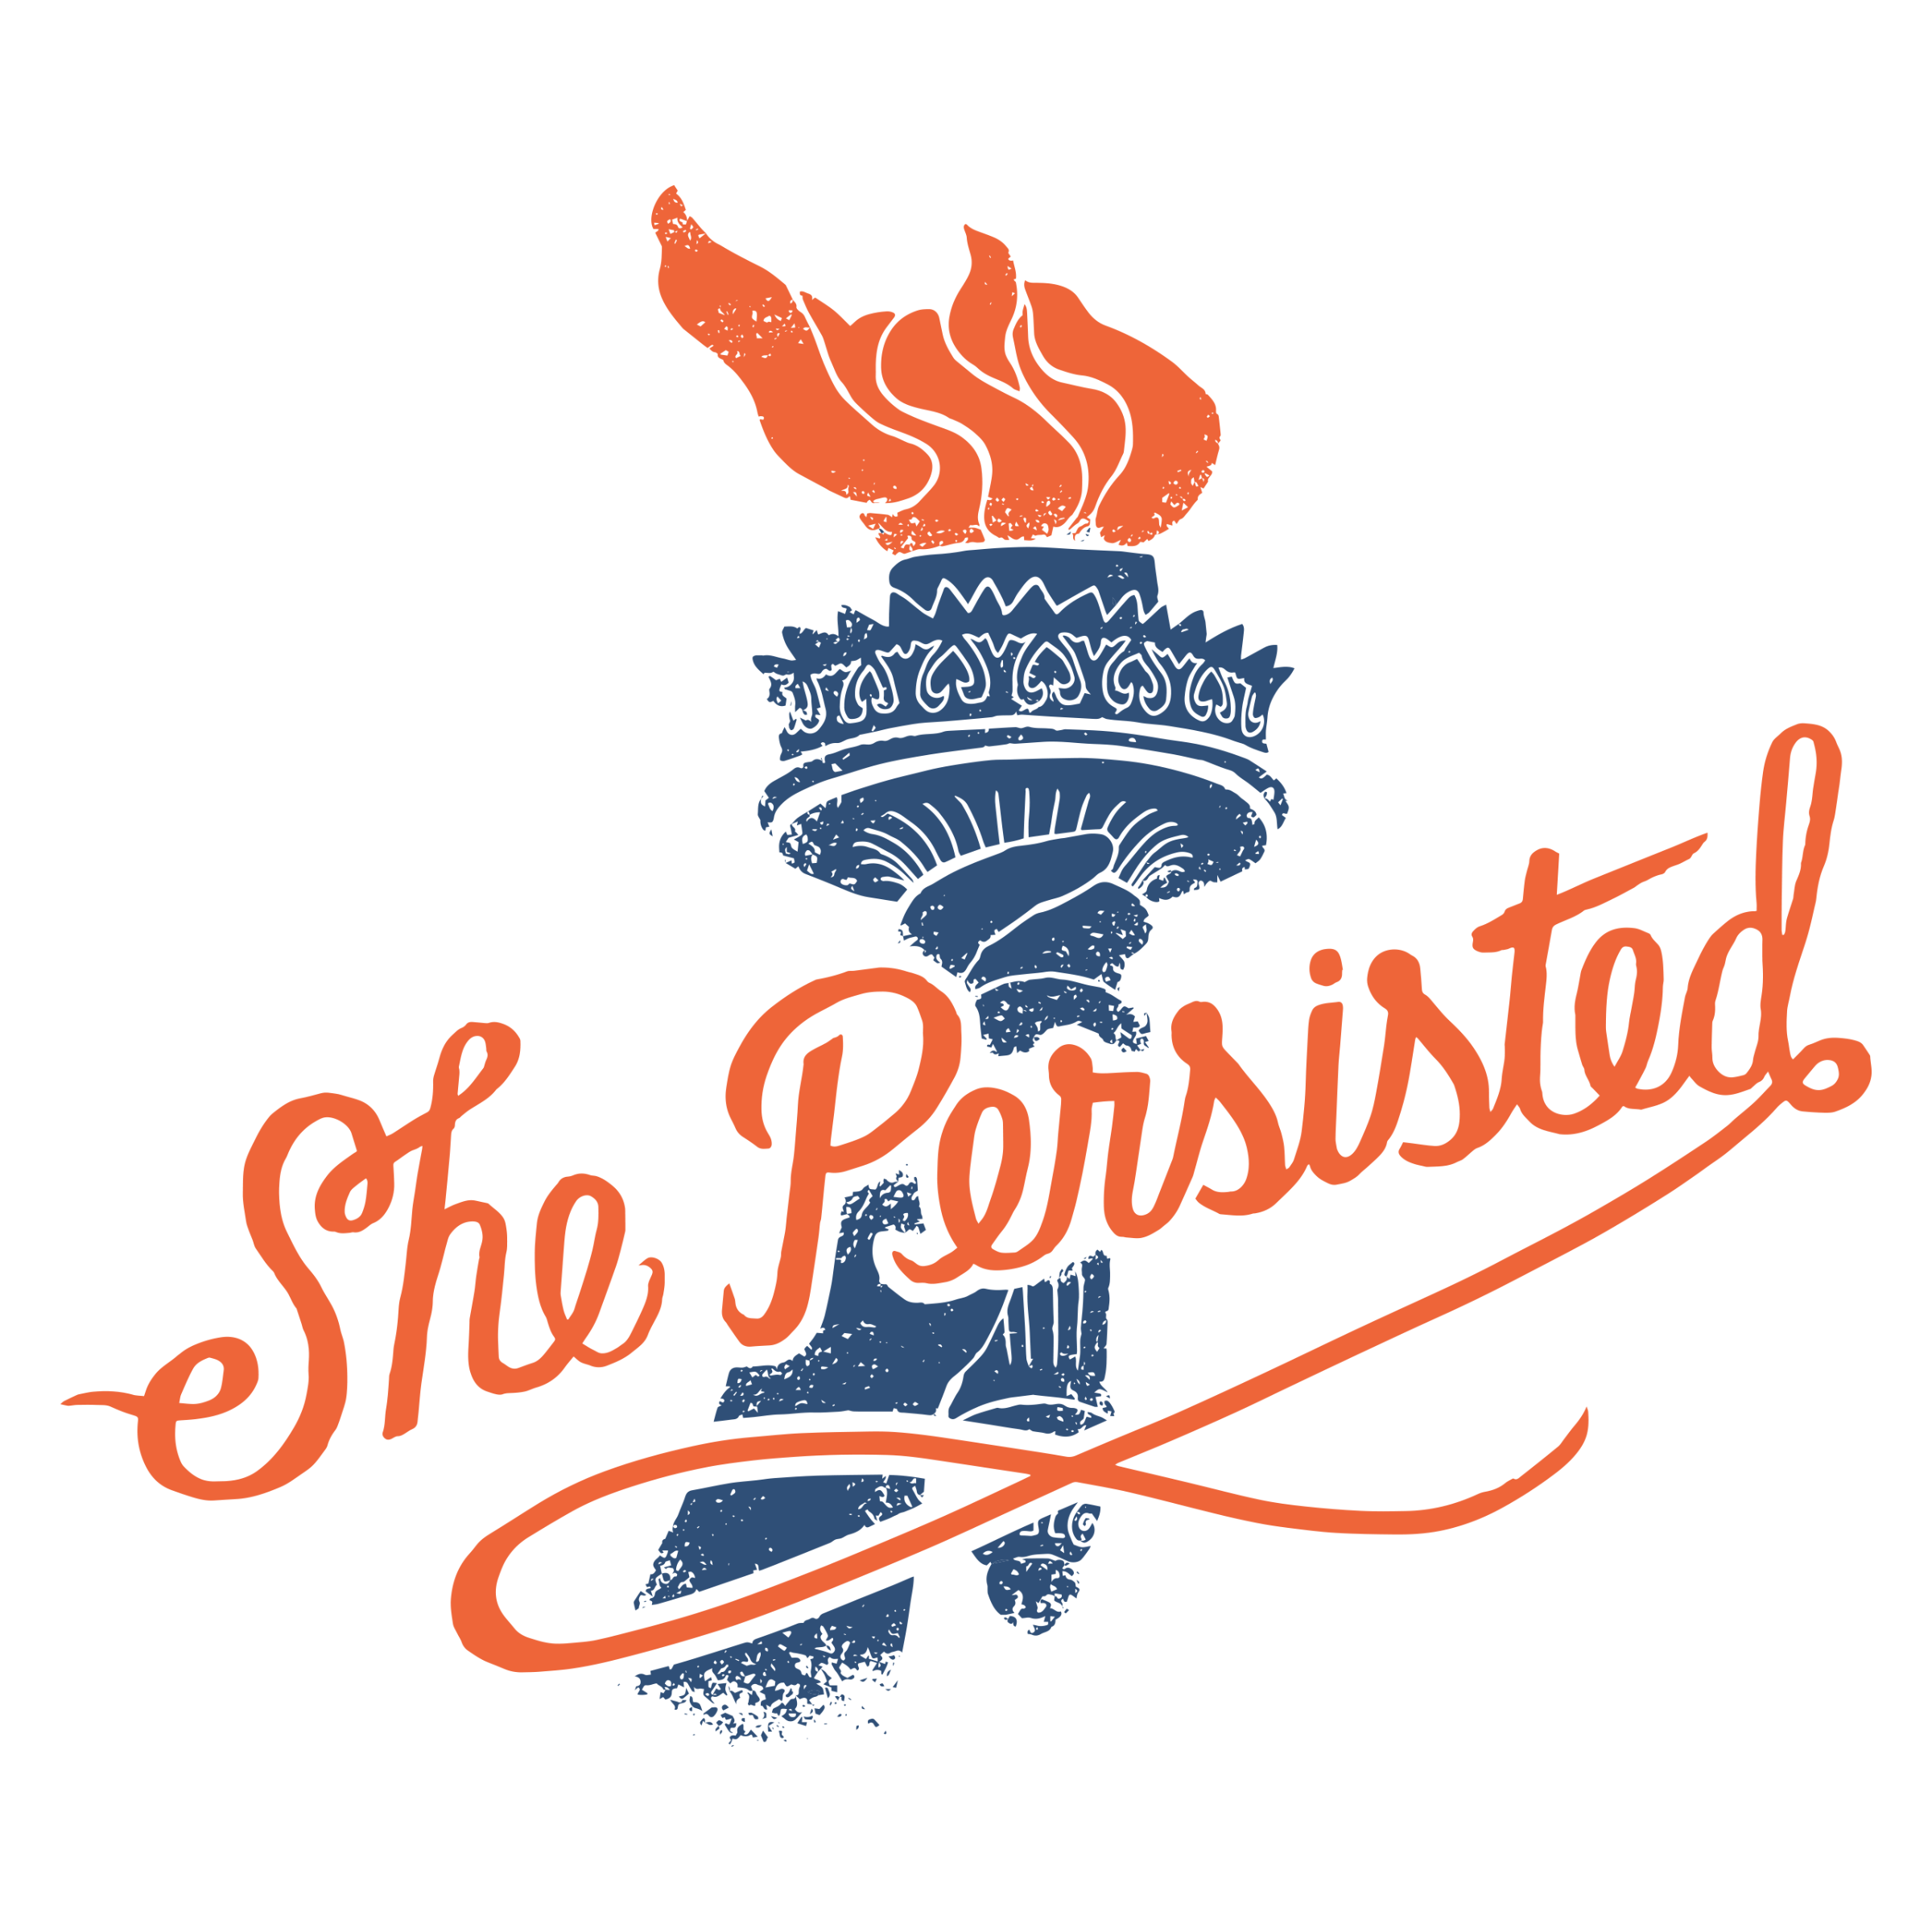 She Persisted Detail